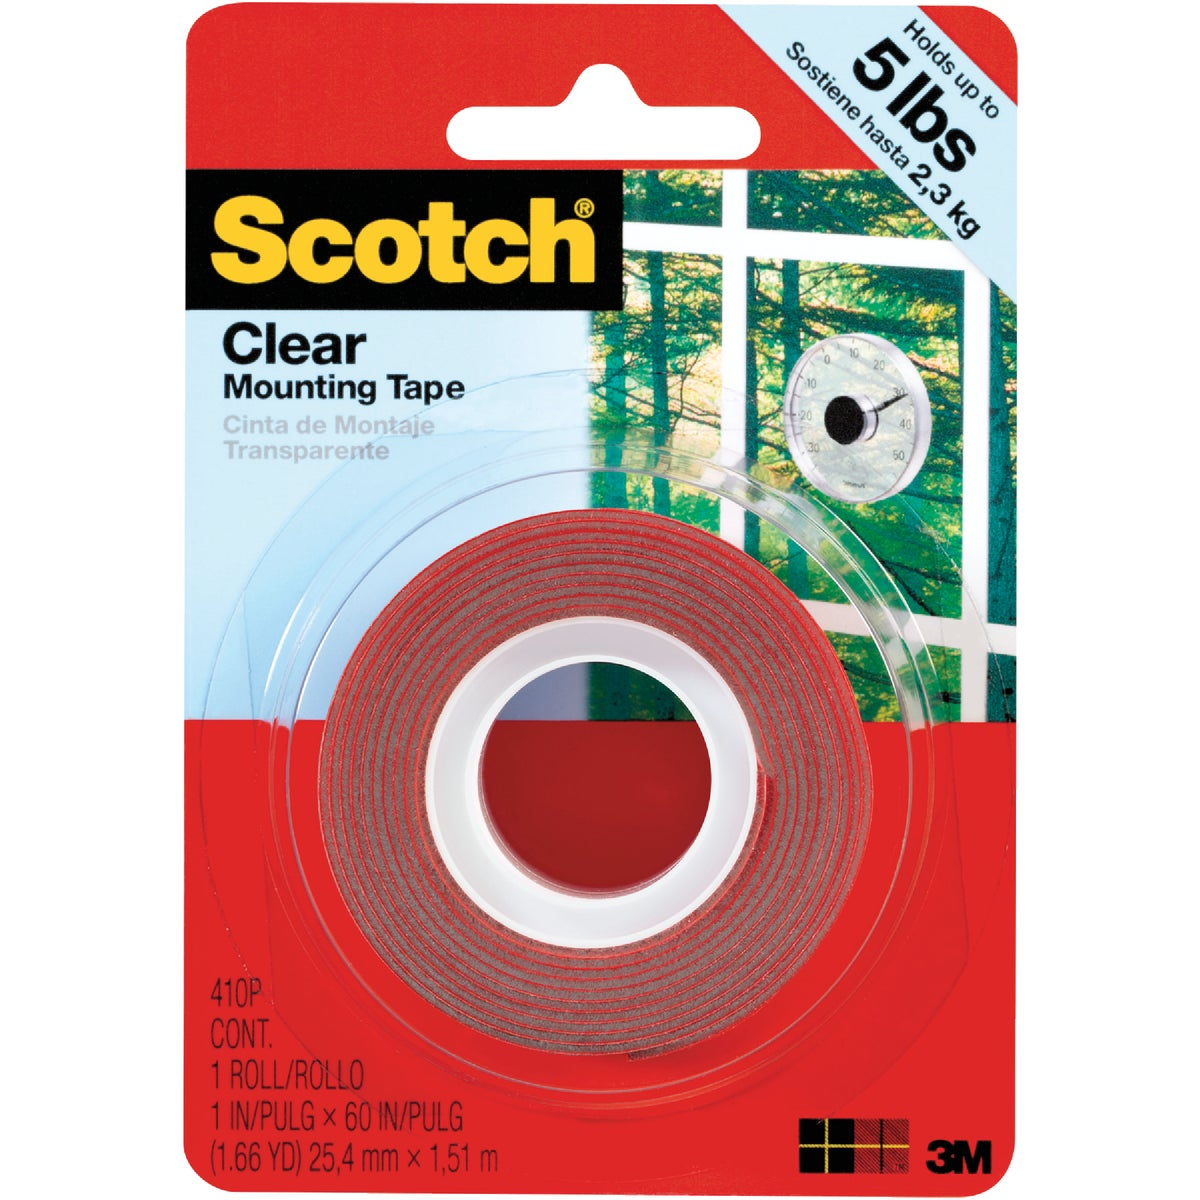 1X60 CLR MOUNTING TAPE - 410DC by 3m Co